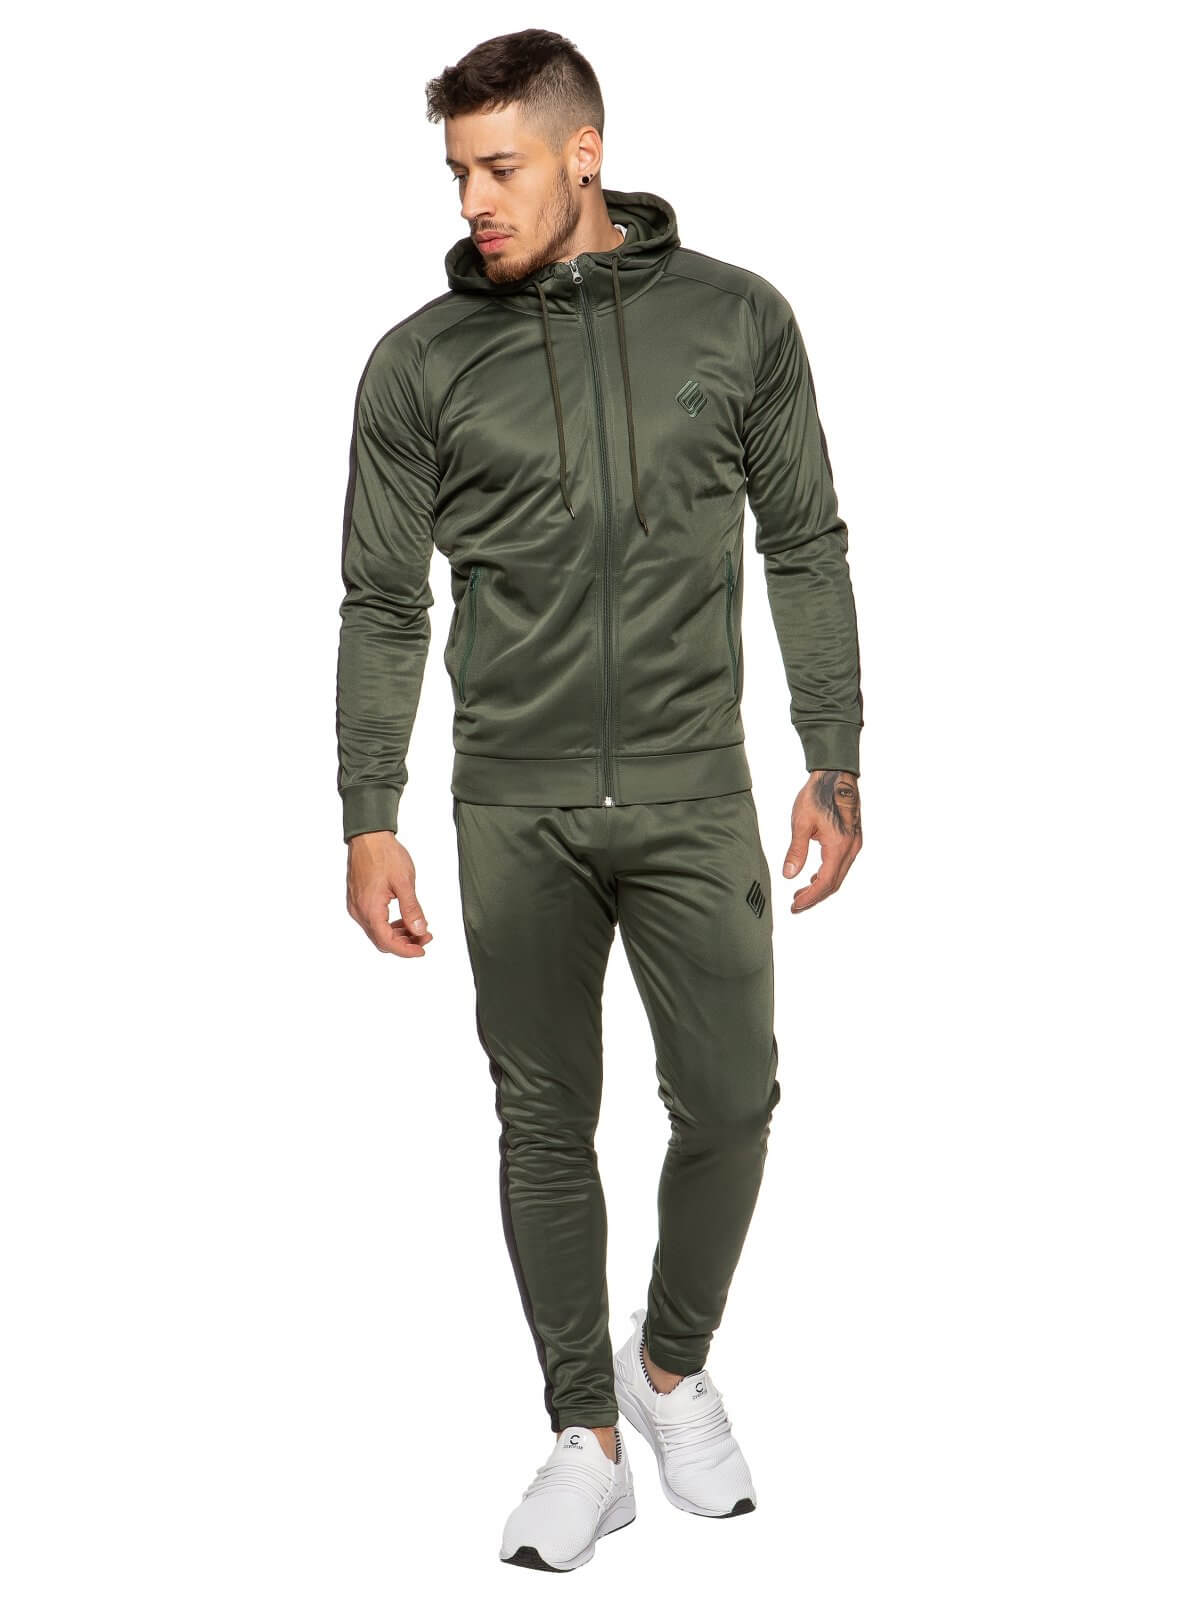 Mens Zip Through Full Khaki Tracksuit Set | Enzo Designer Menswear